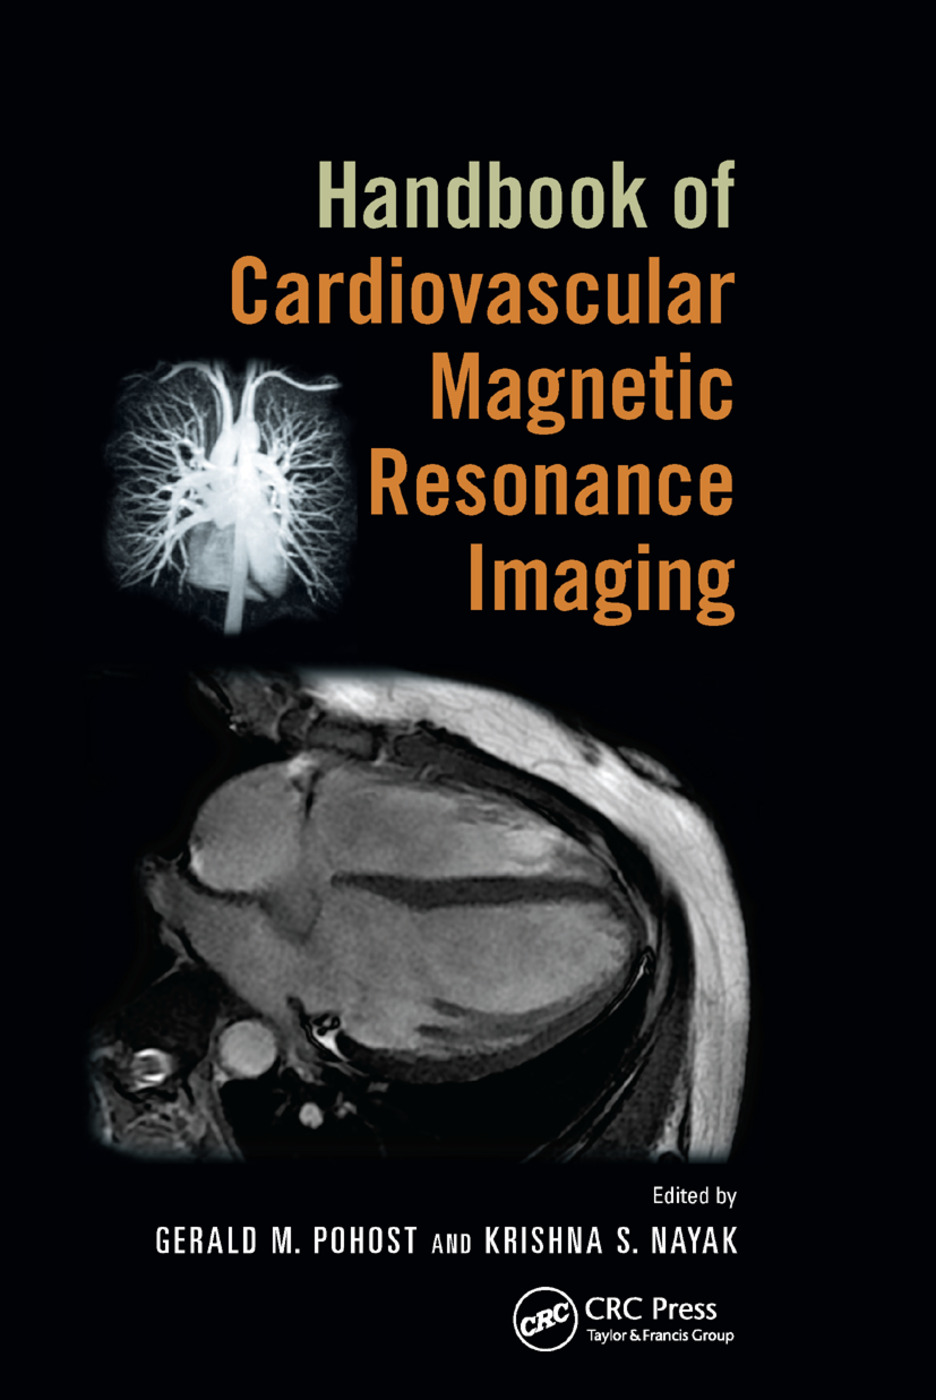 Handbook of Cardiovascular Magnetic Resonance Imaging: 1st Edition (Paperback) book cover